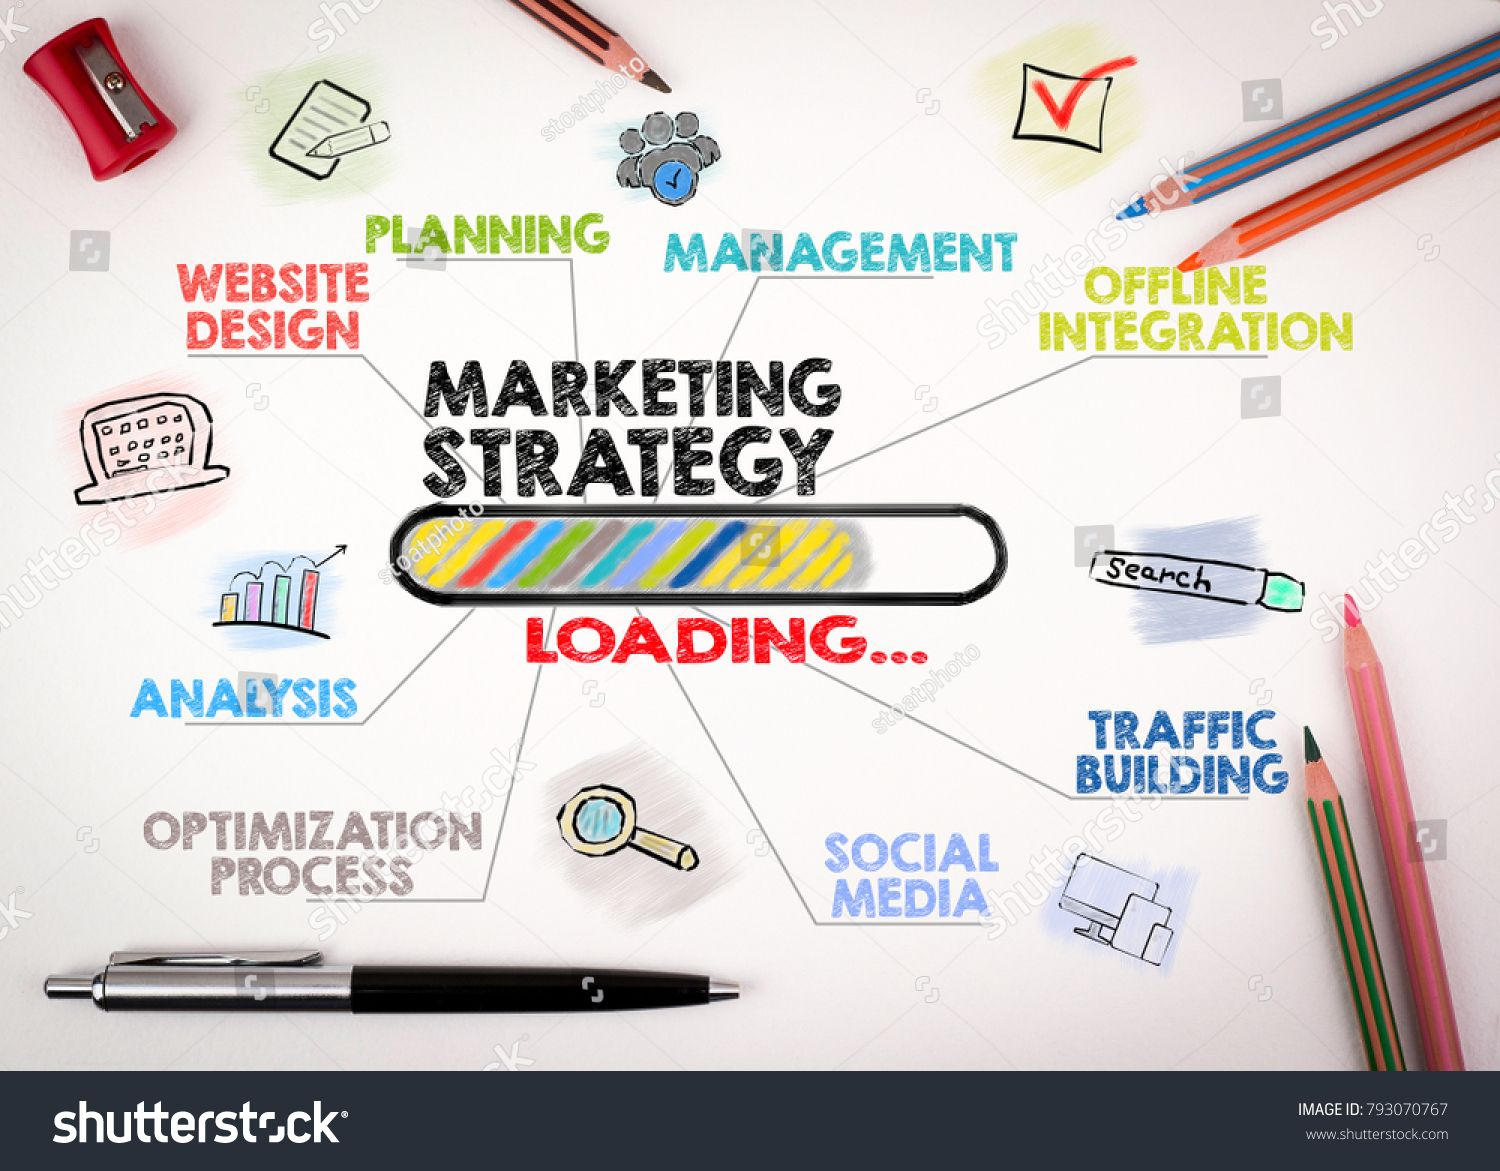 Marketing Strategy Concept Chart With Keywords And Icons On White Background Marketing Strategy Digital Marketing Digital Marketing Services